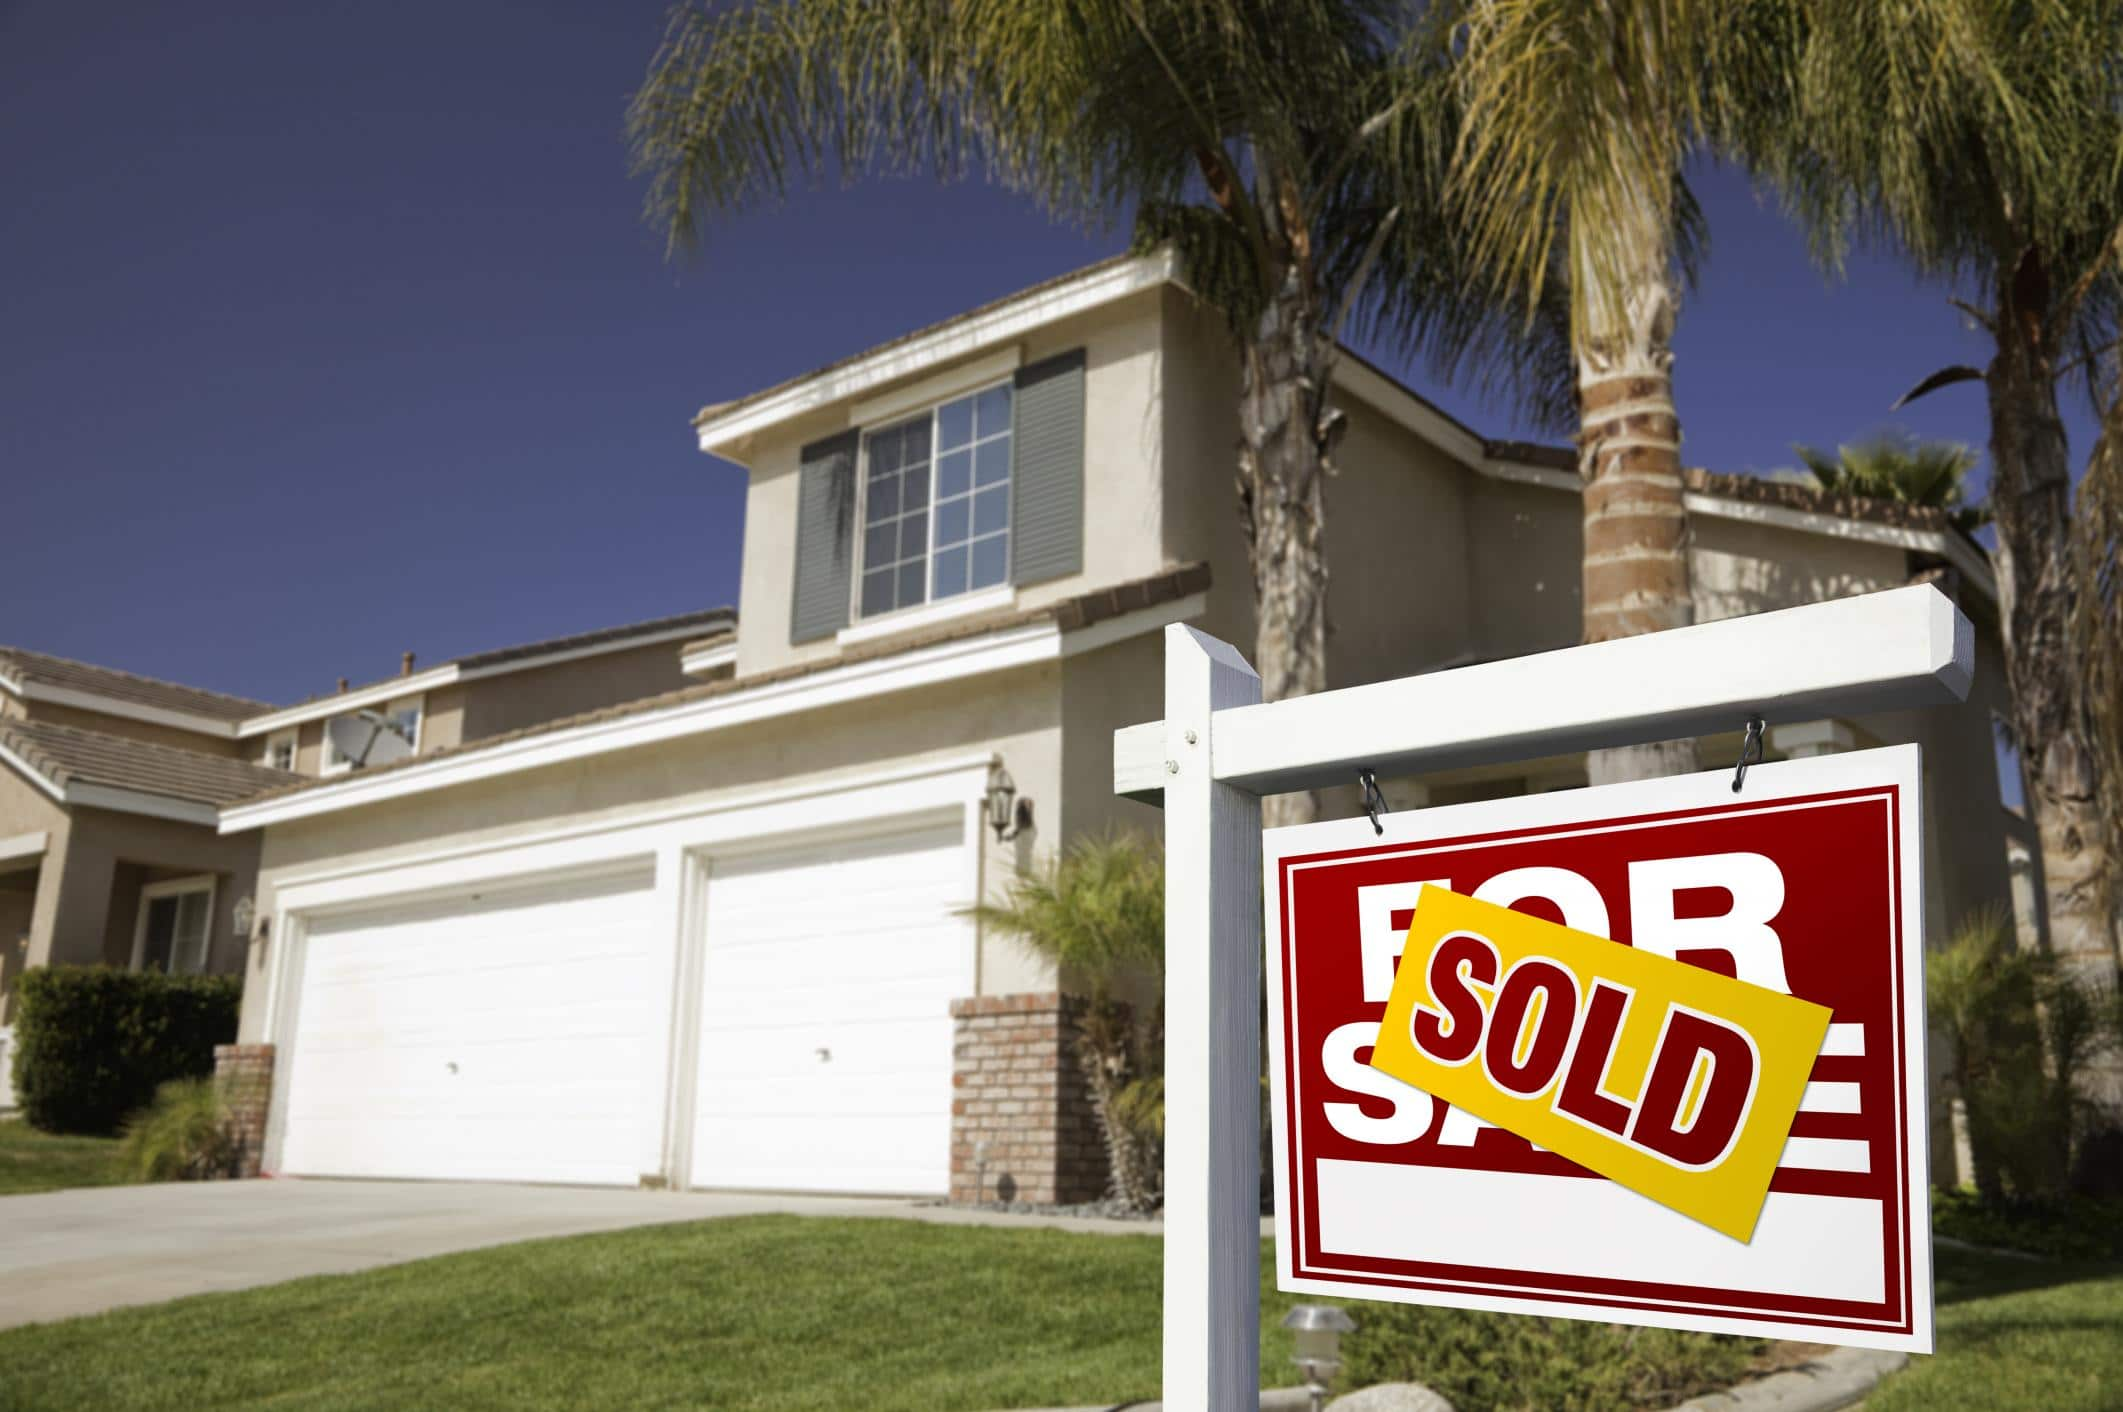 For Sale Sold Sign: What To Expect When Selling A